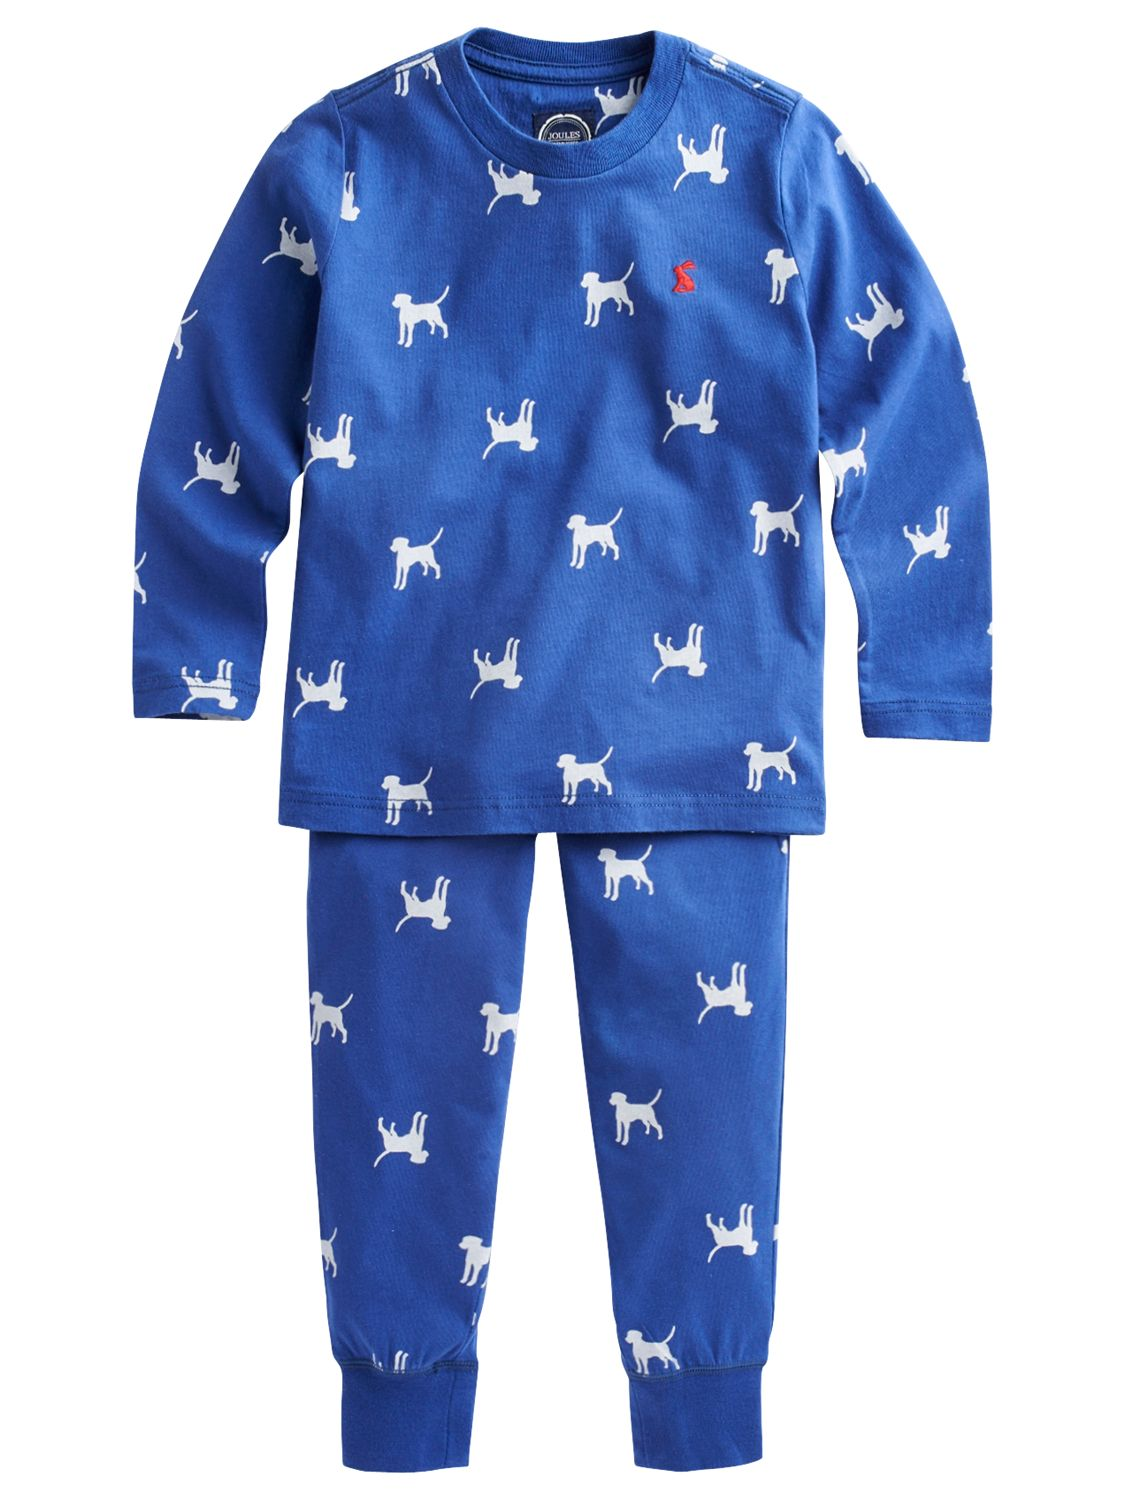 Little Joule Raiden Dog Pyjamas, Blue/White